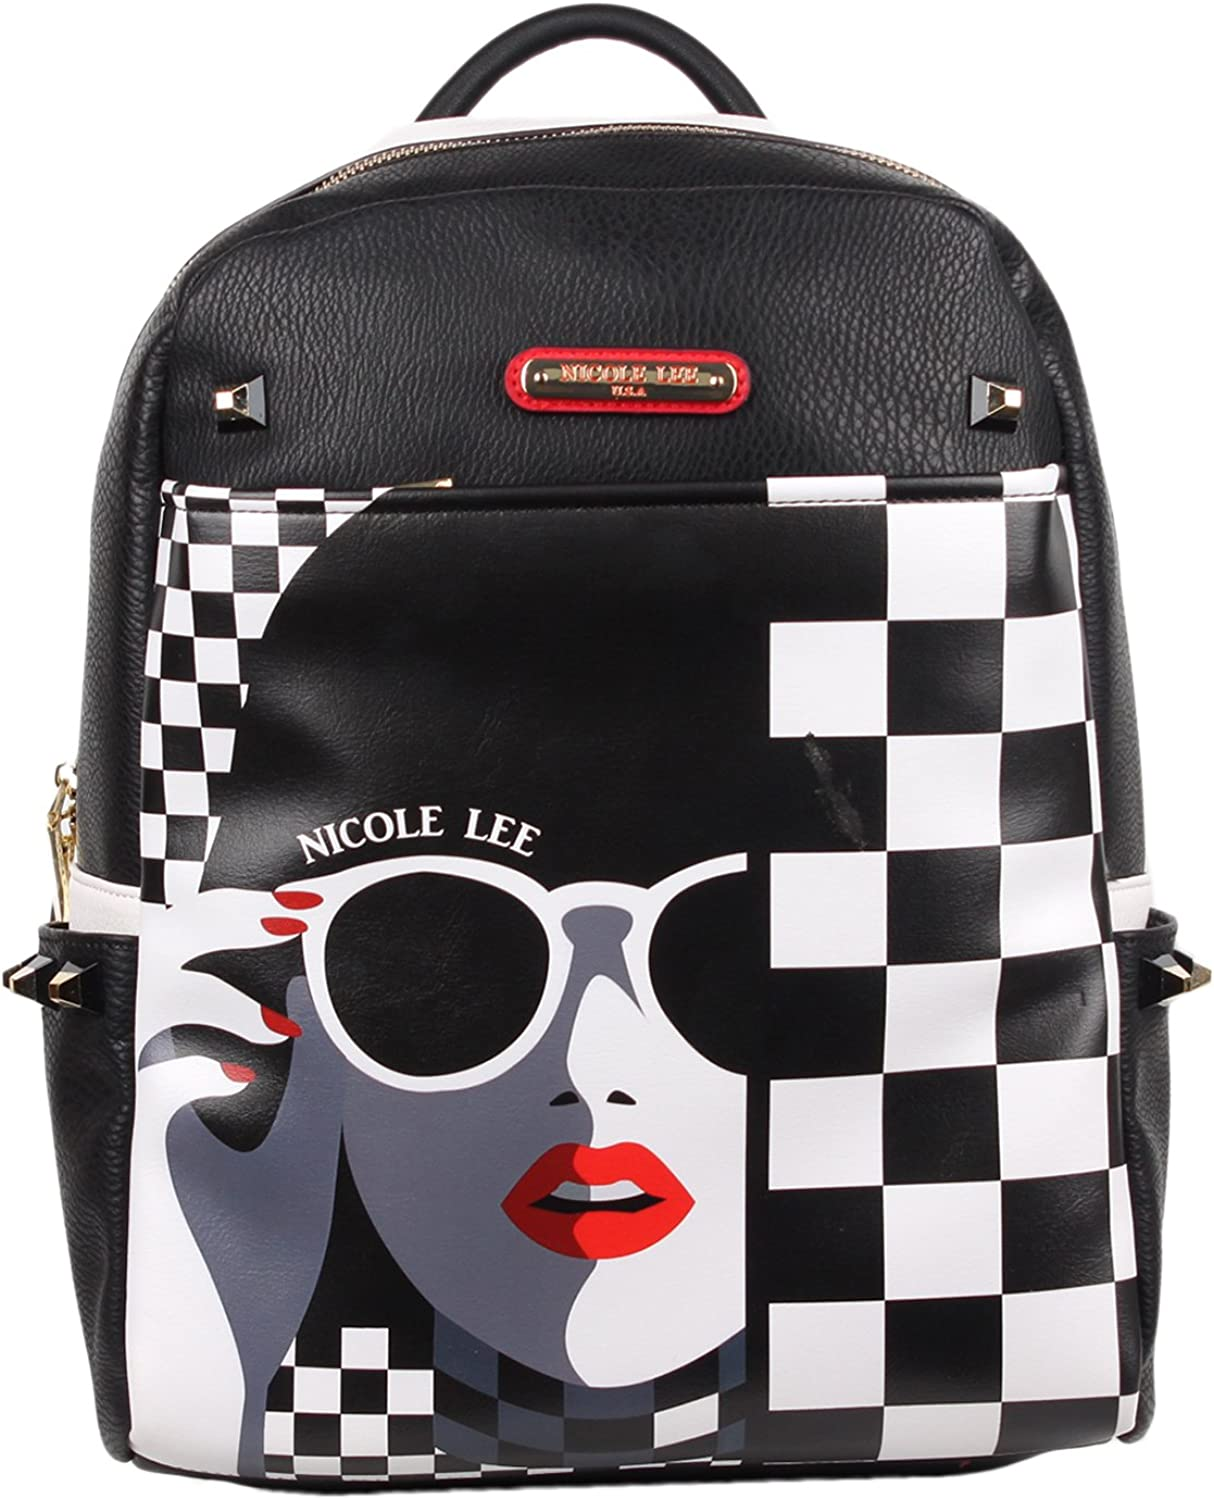 Nicole Lee Women s Adeen Smart Lunch Backpack Vol. 2 Lady in Sunglasses